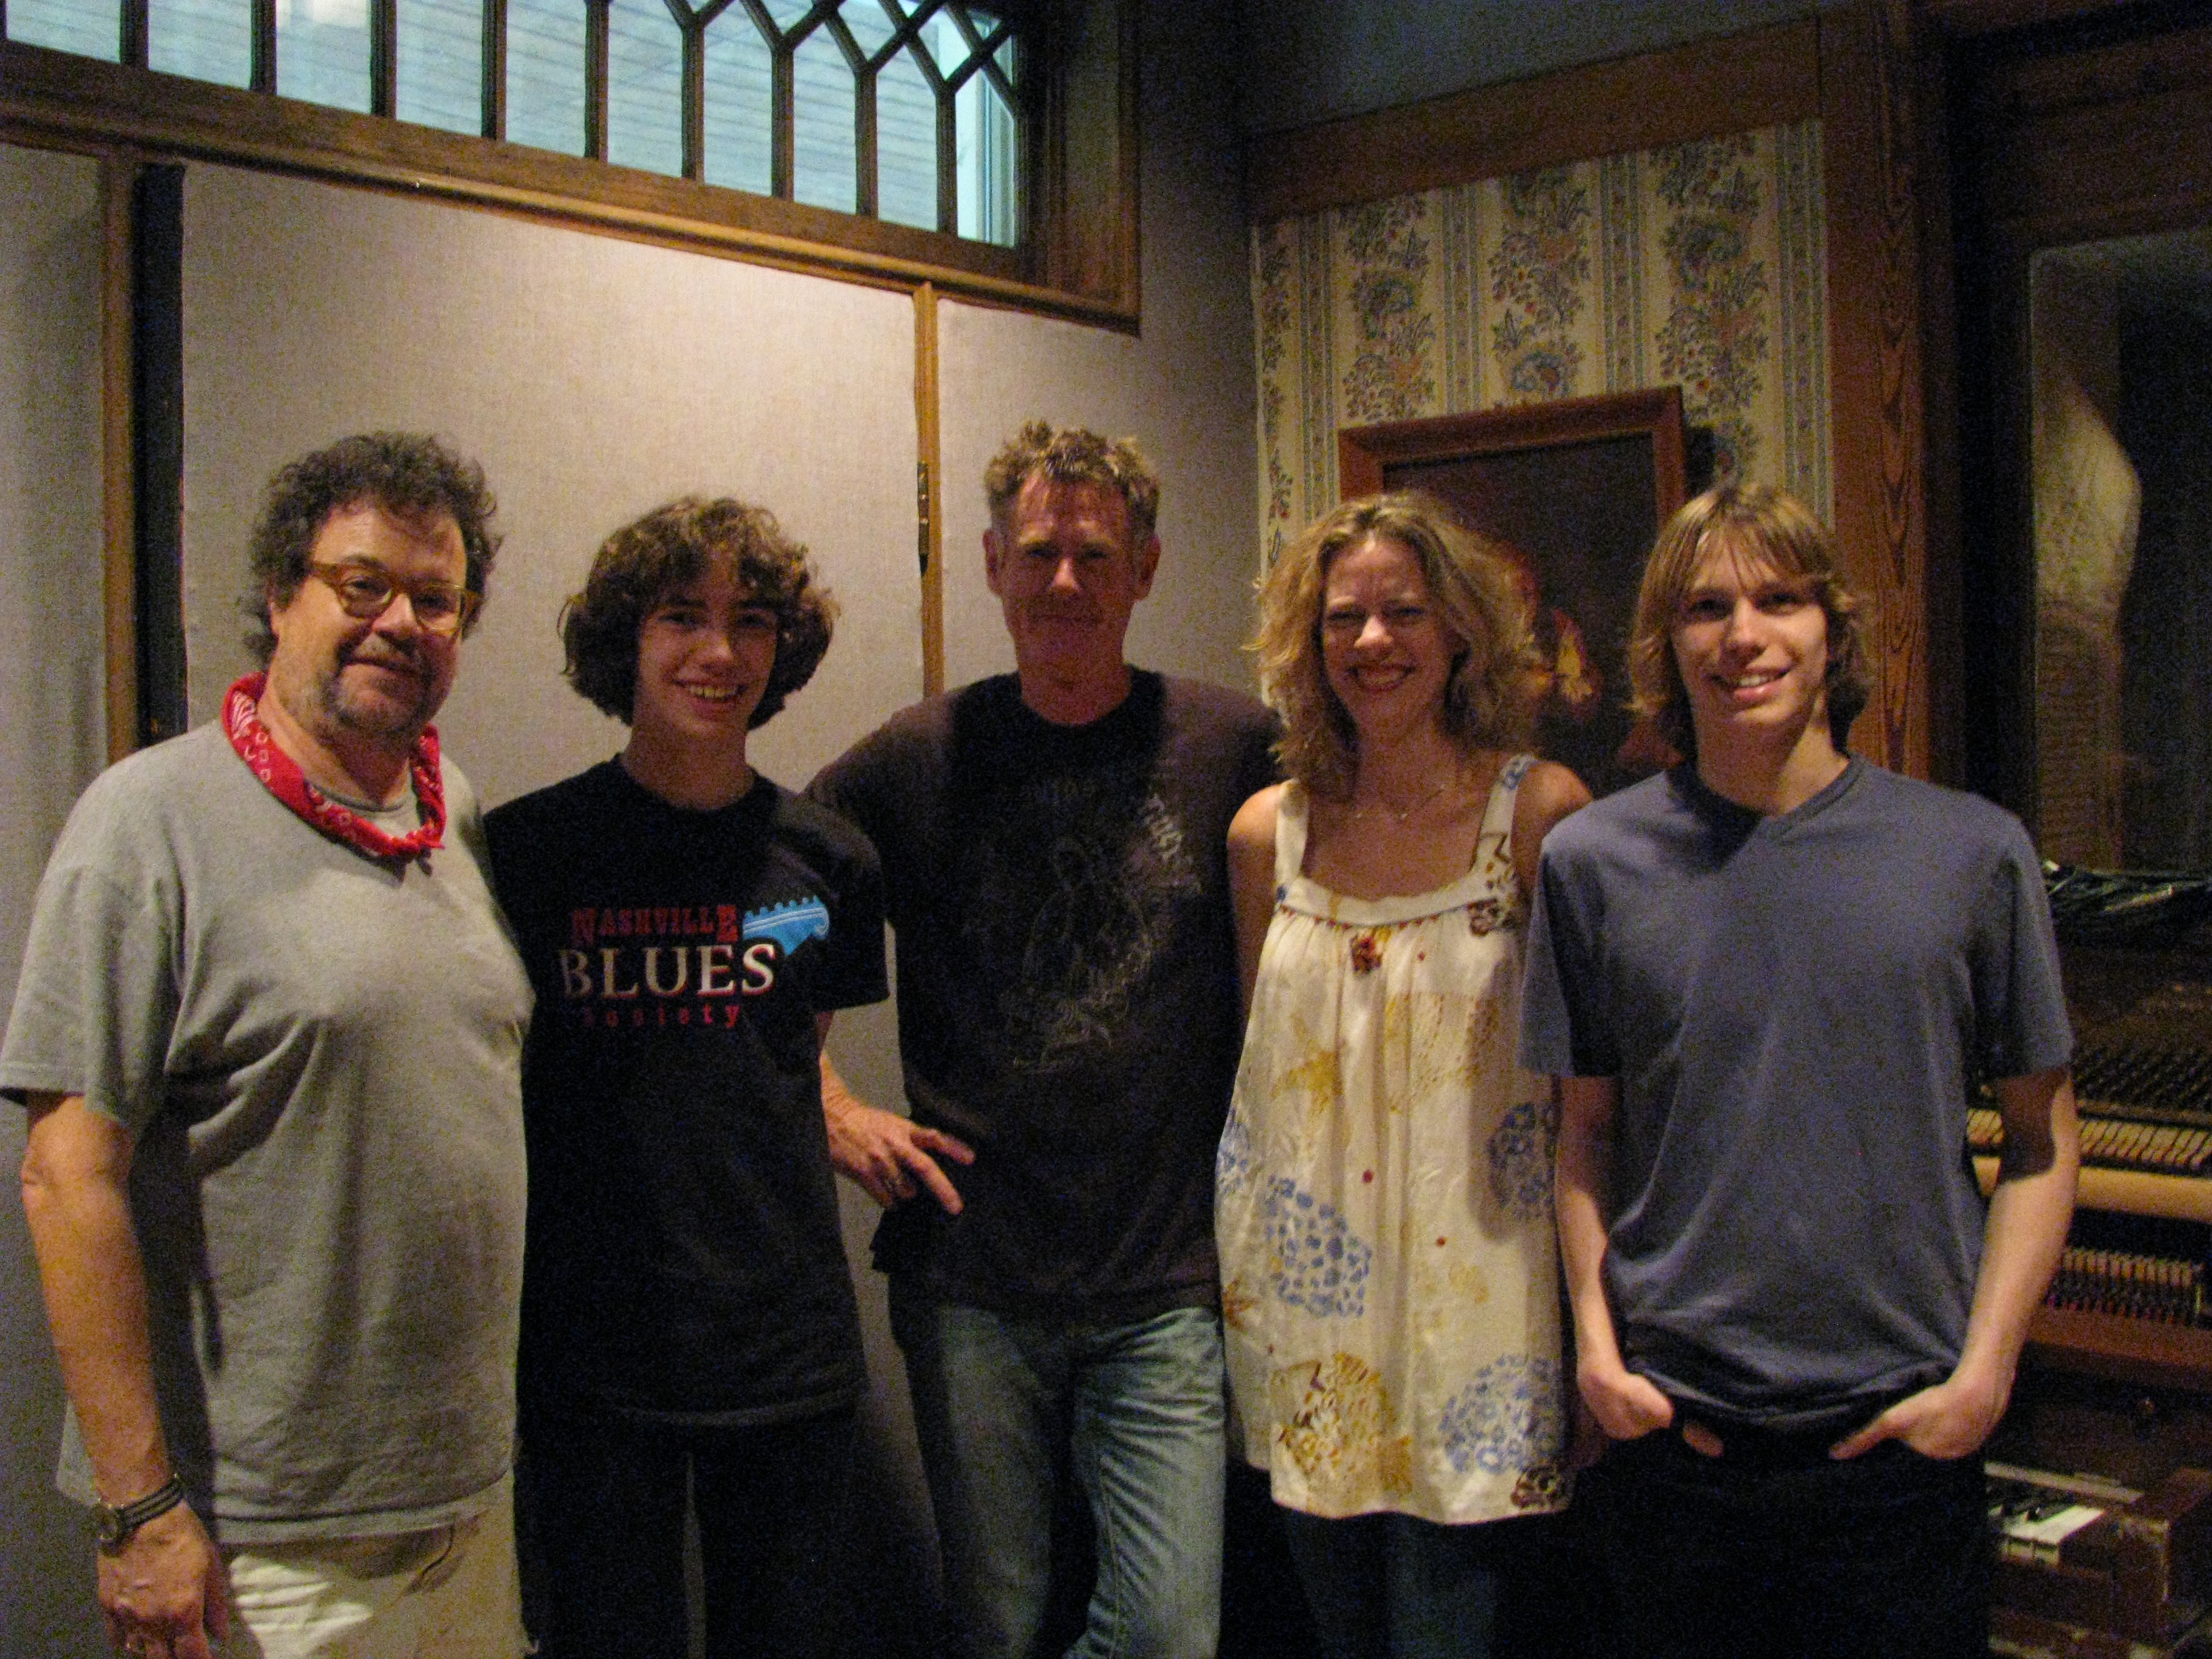 L-R: Paul Griffith, Jeff, Bones Hillman, Jen Gunderman and Brian after a day of recording.